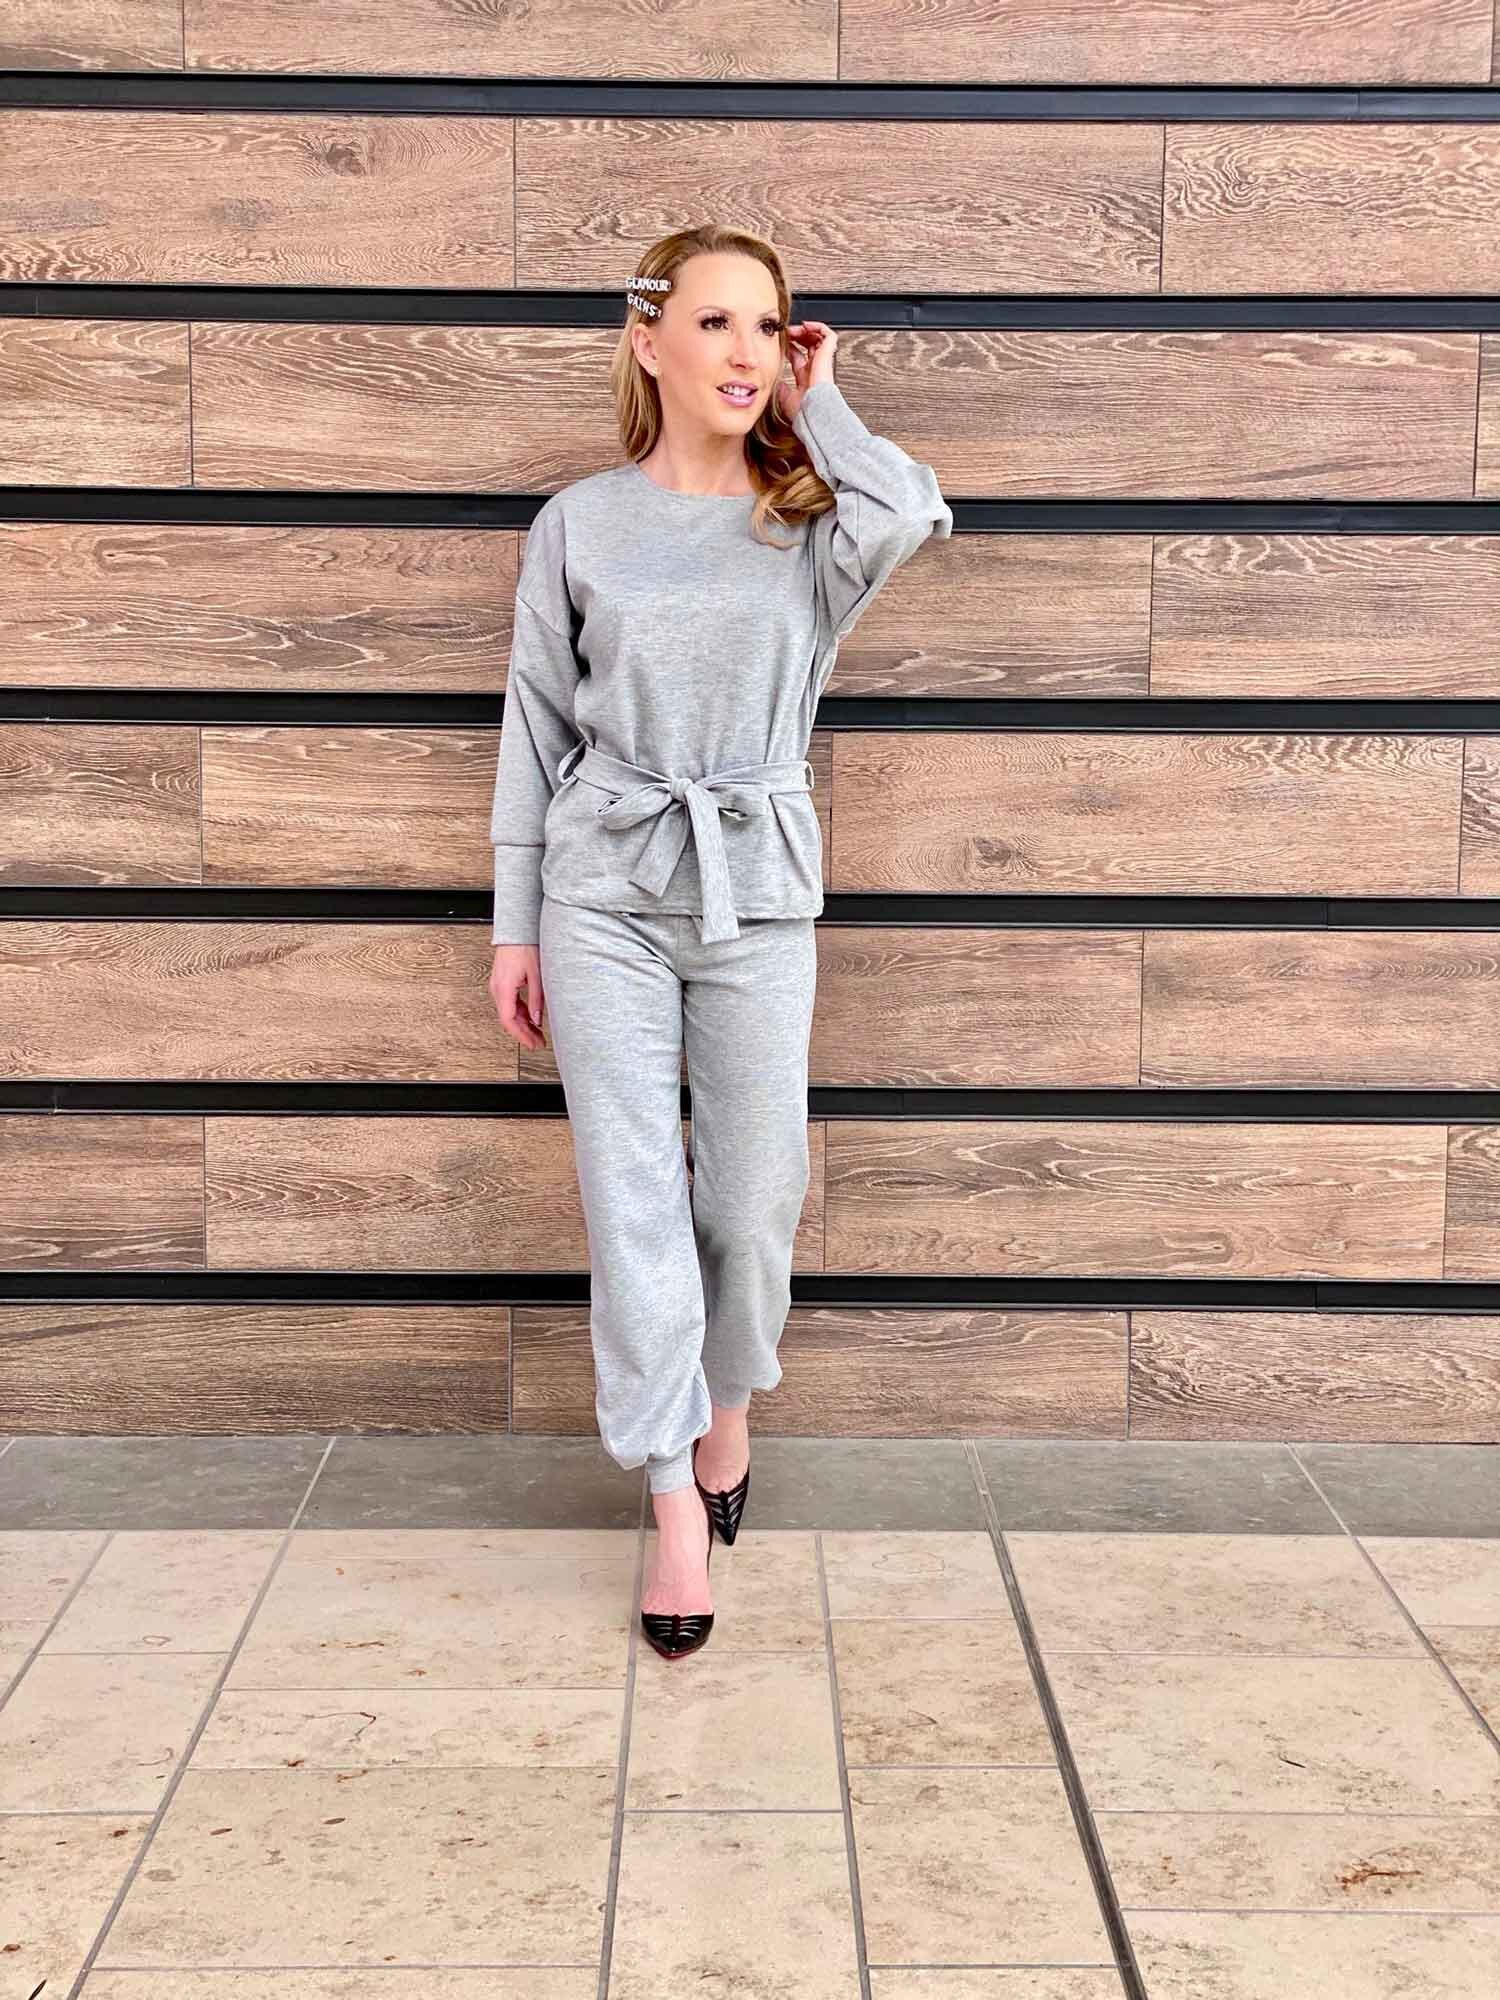 grey-coord-set-femme-luxe-finery-model.jpg